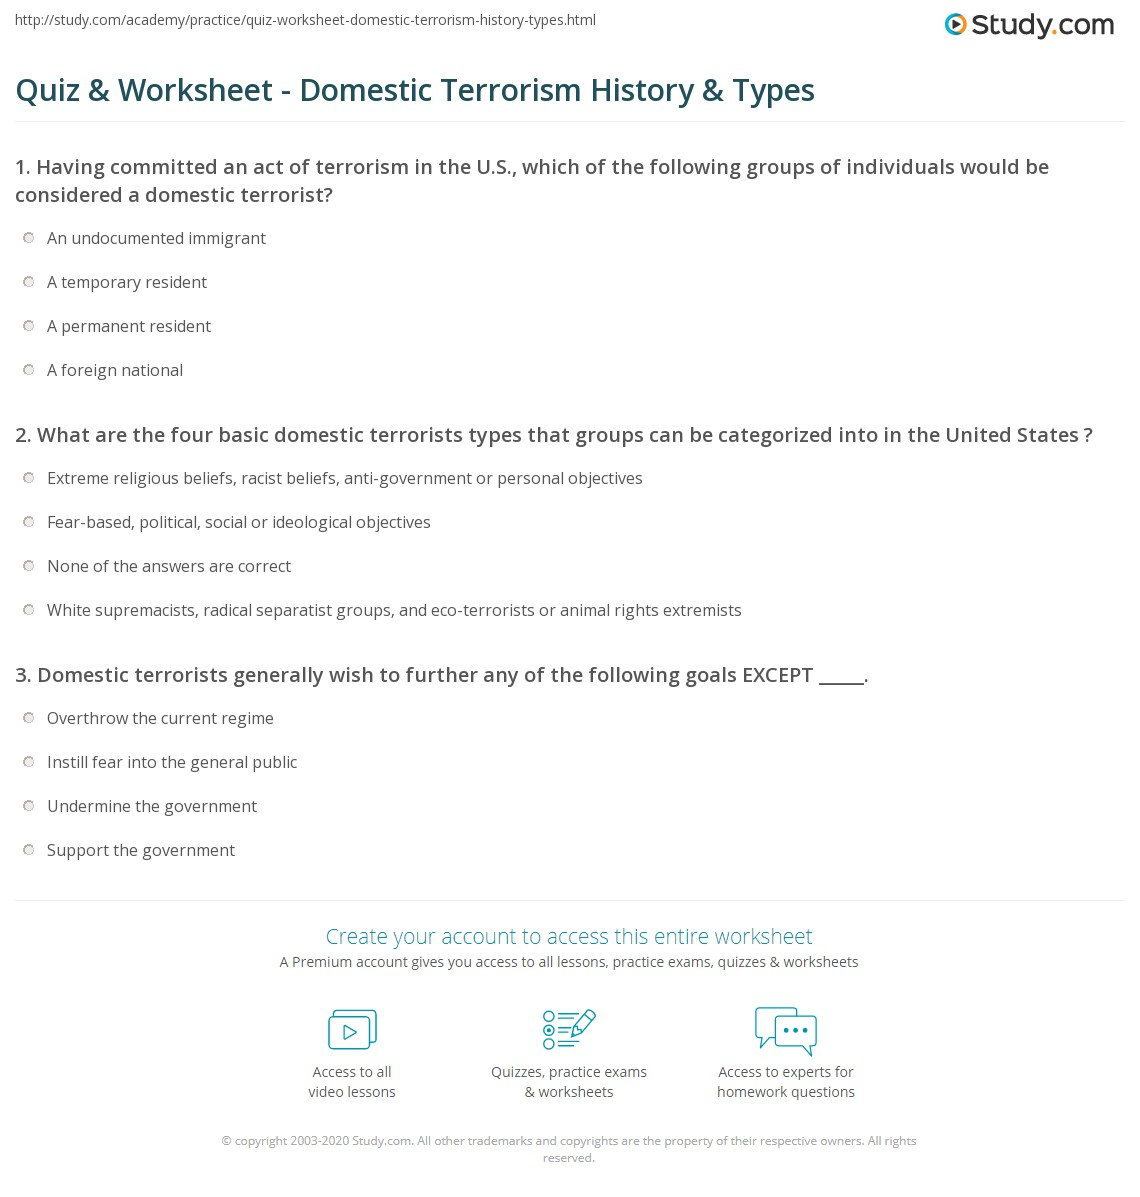 Worksheets Criminal Thinking Worksheets quiz worksheet domestic terrorism history types study com print definition examples worksheet